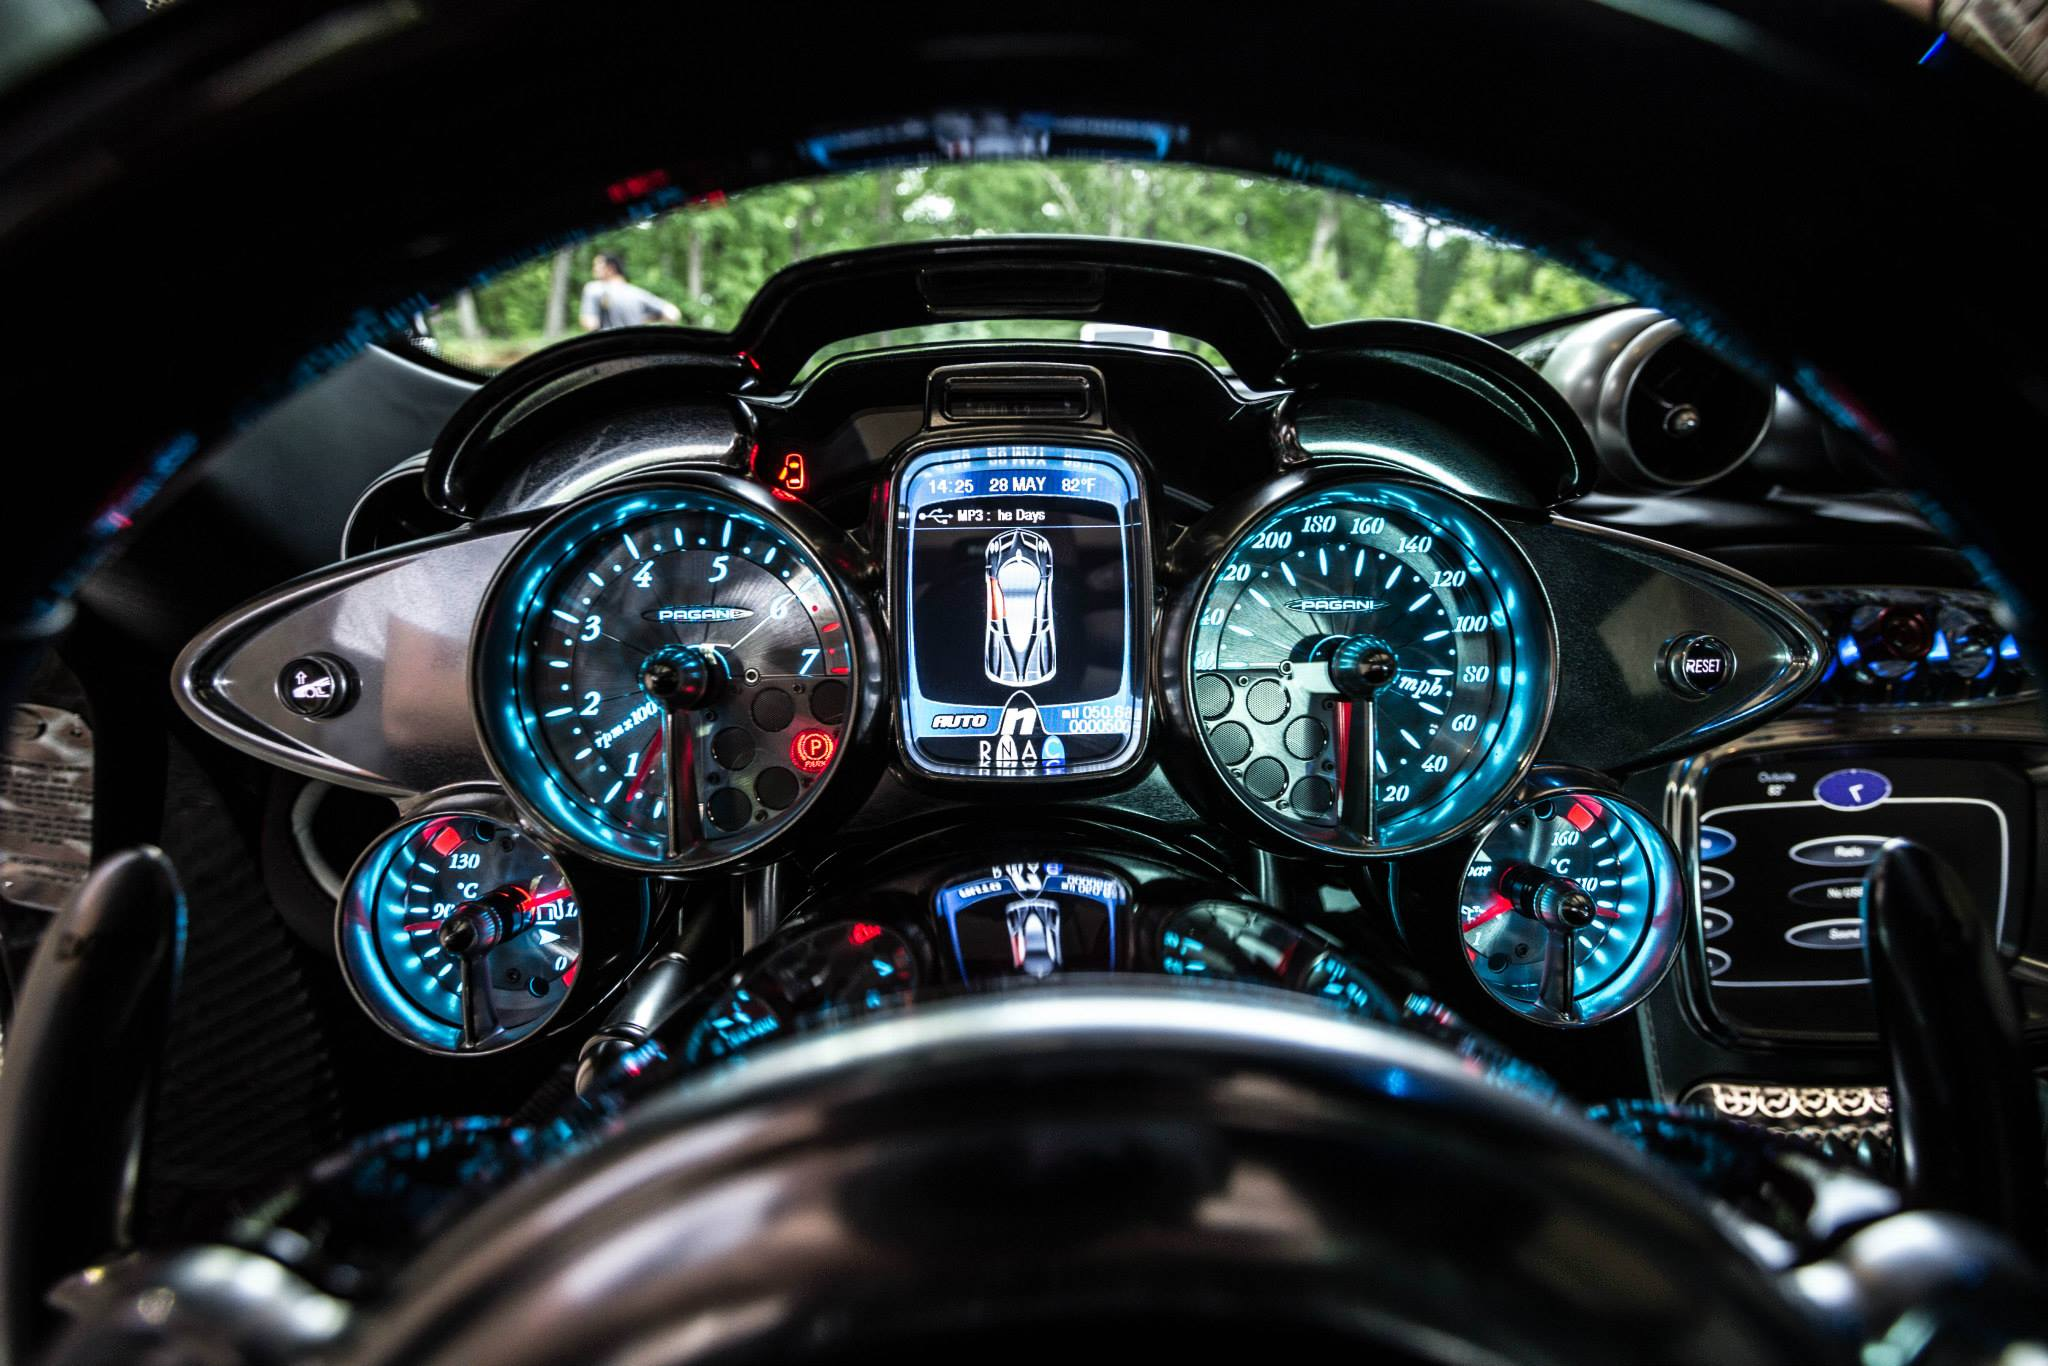 Quot 1 Of 1 Of 1 Quot Pagani Huayra Interior Photo Speedometer